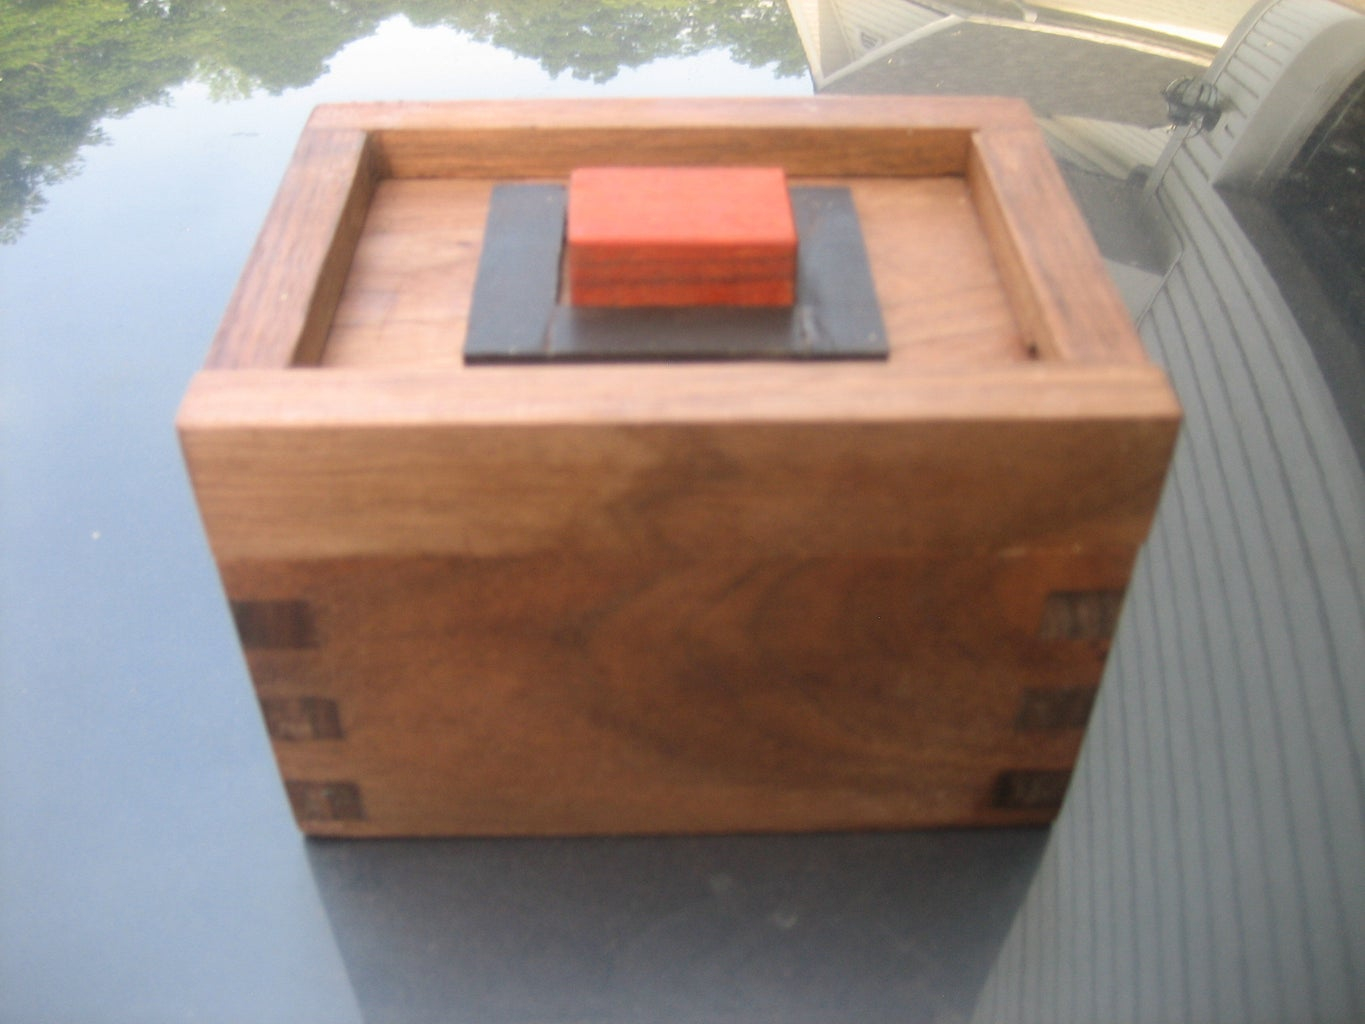 THE RED STONE PUZZLE BOX WITH PLANS